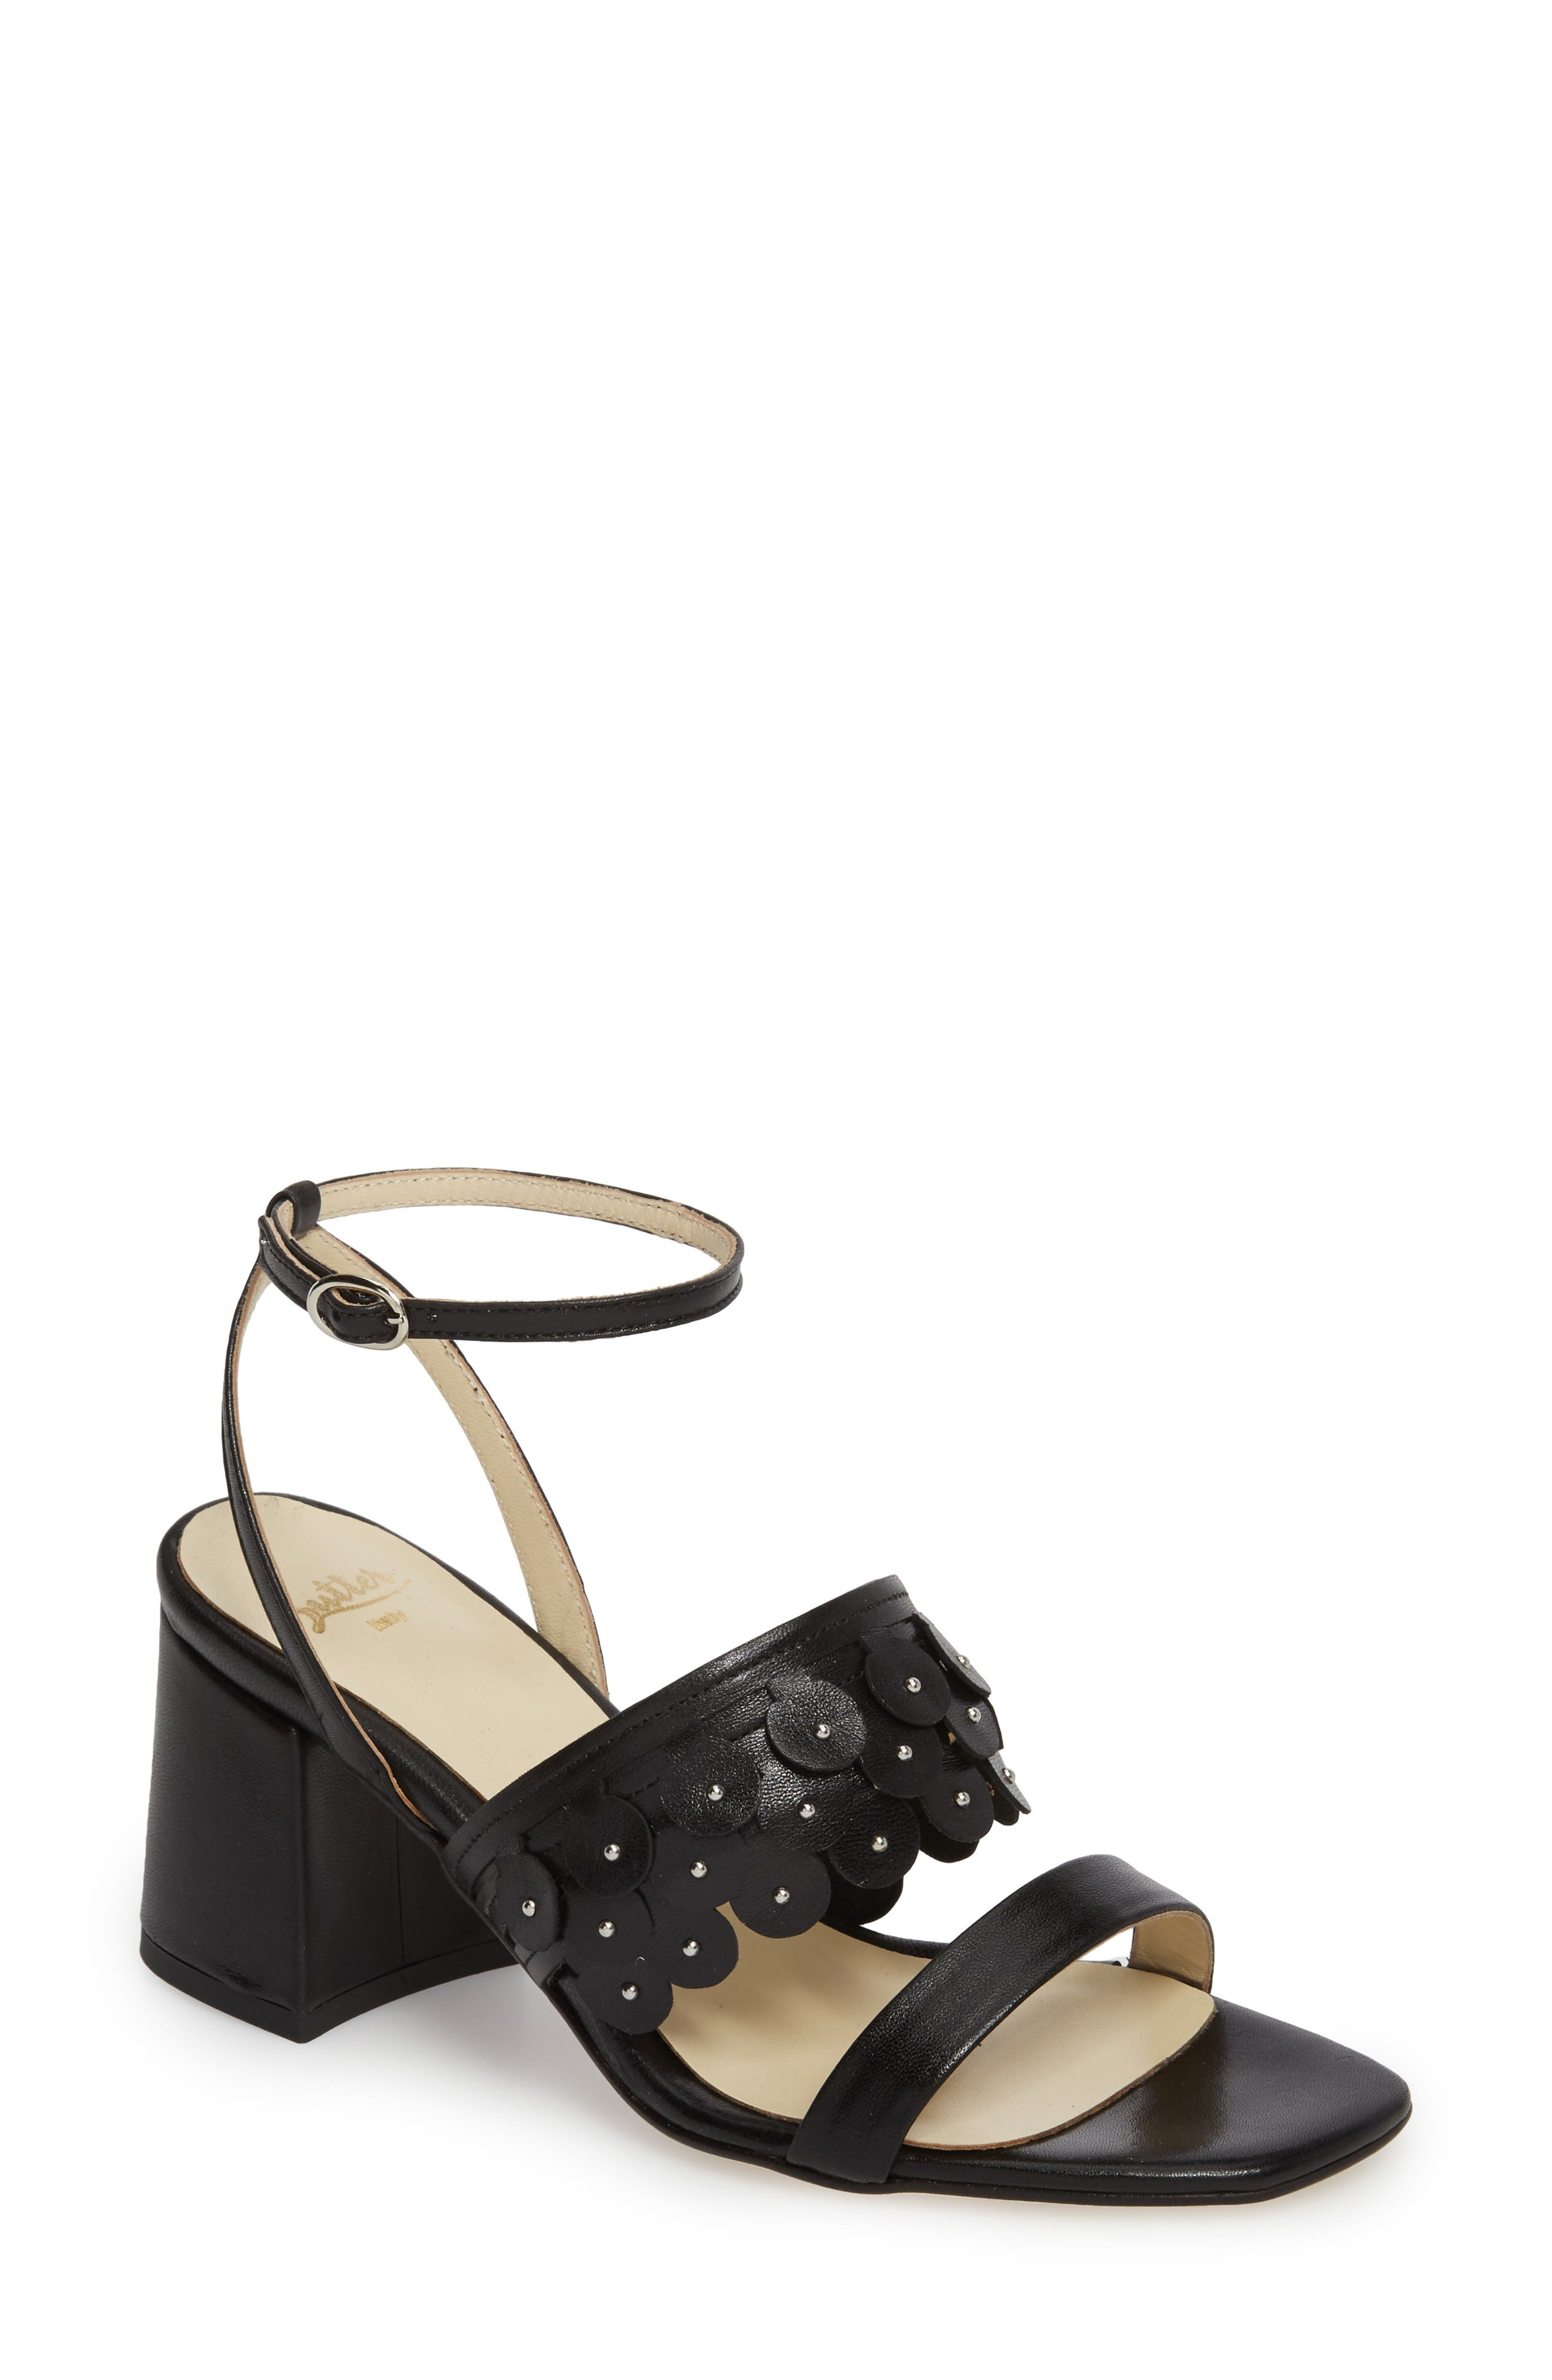 Butter Finley Studded Ankle Strap Sandal,                             Main thumbnail 1, color,